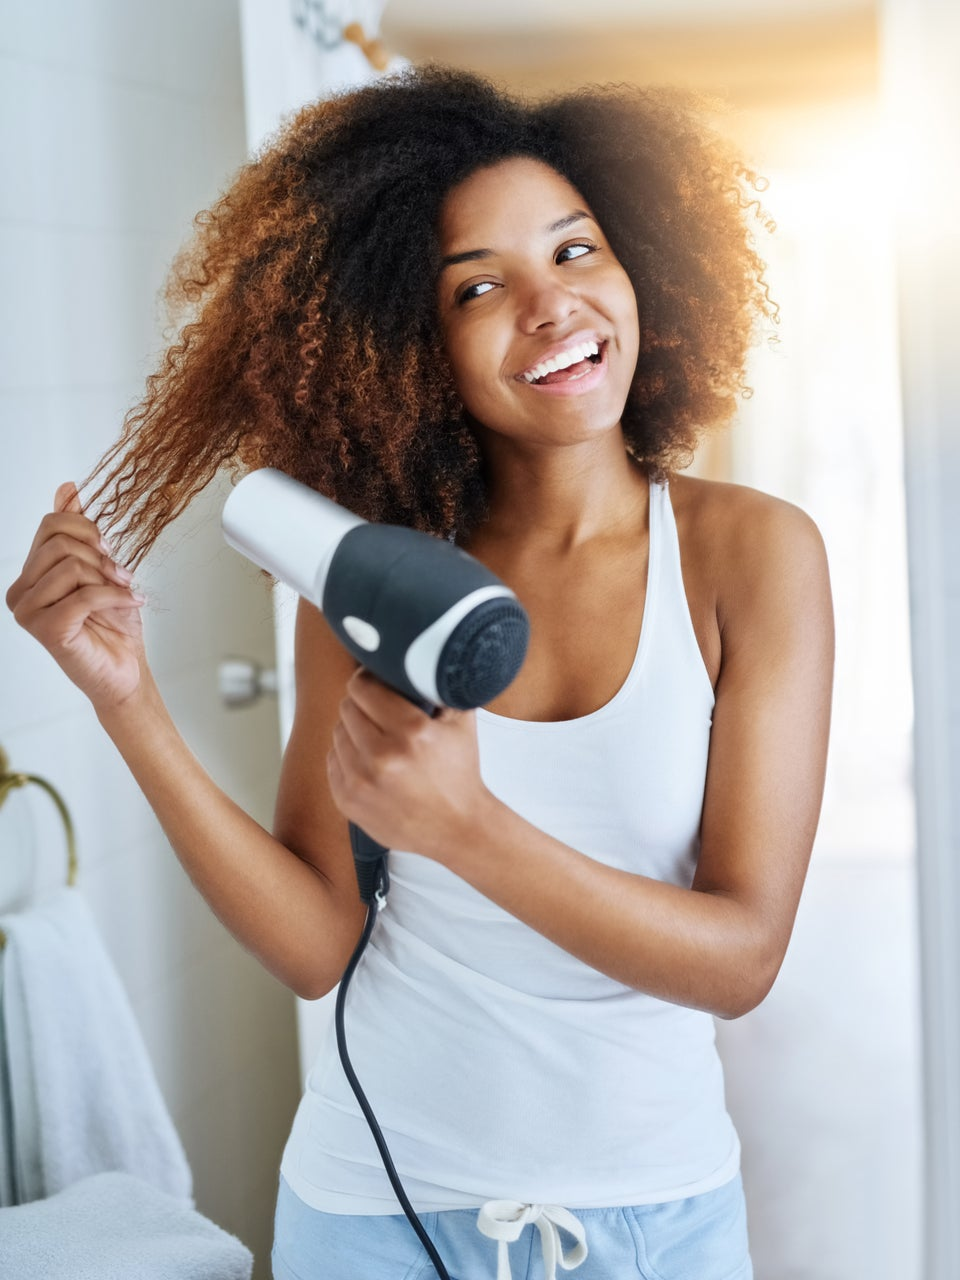 5 Easy Bedtime Hair Habits You Need For A Flawless Morning Routine